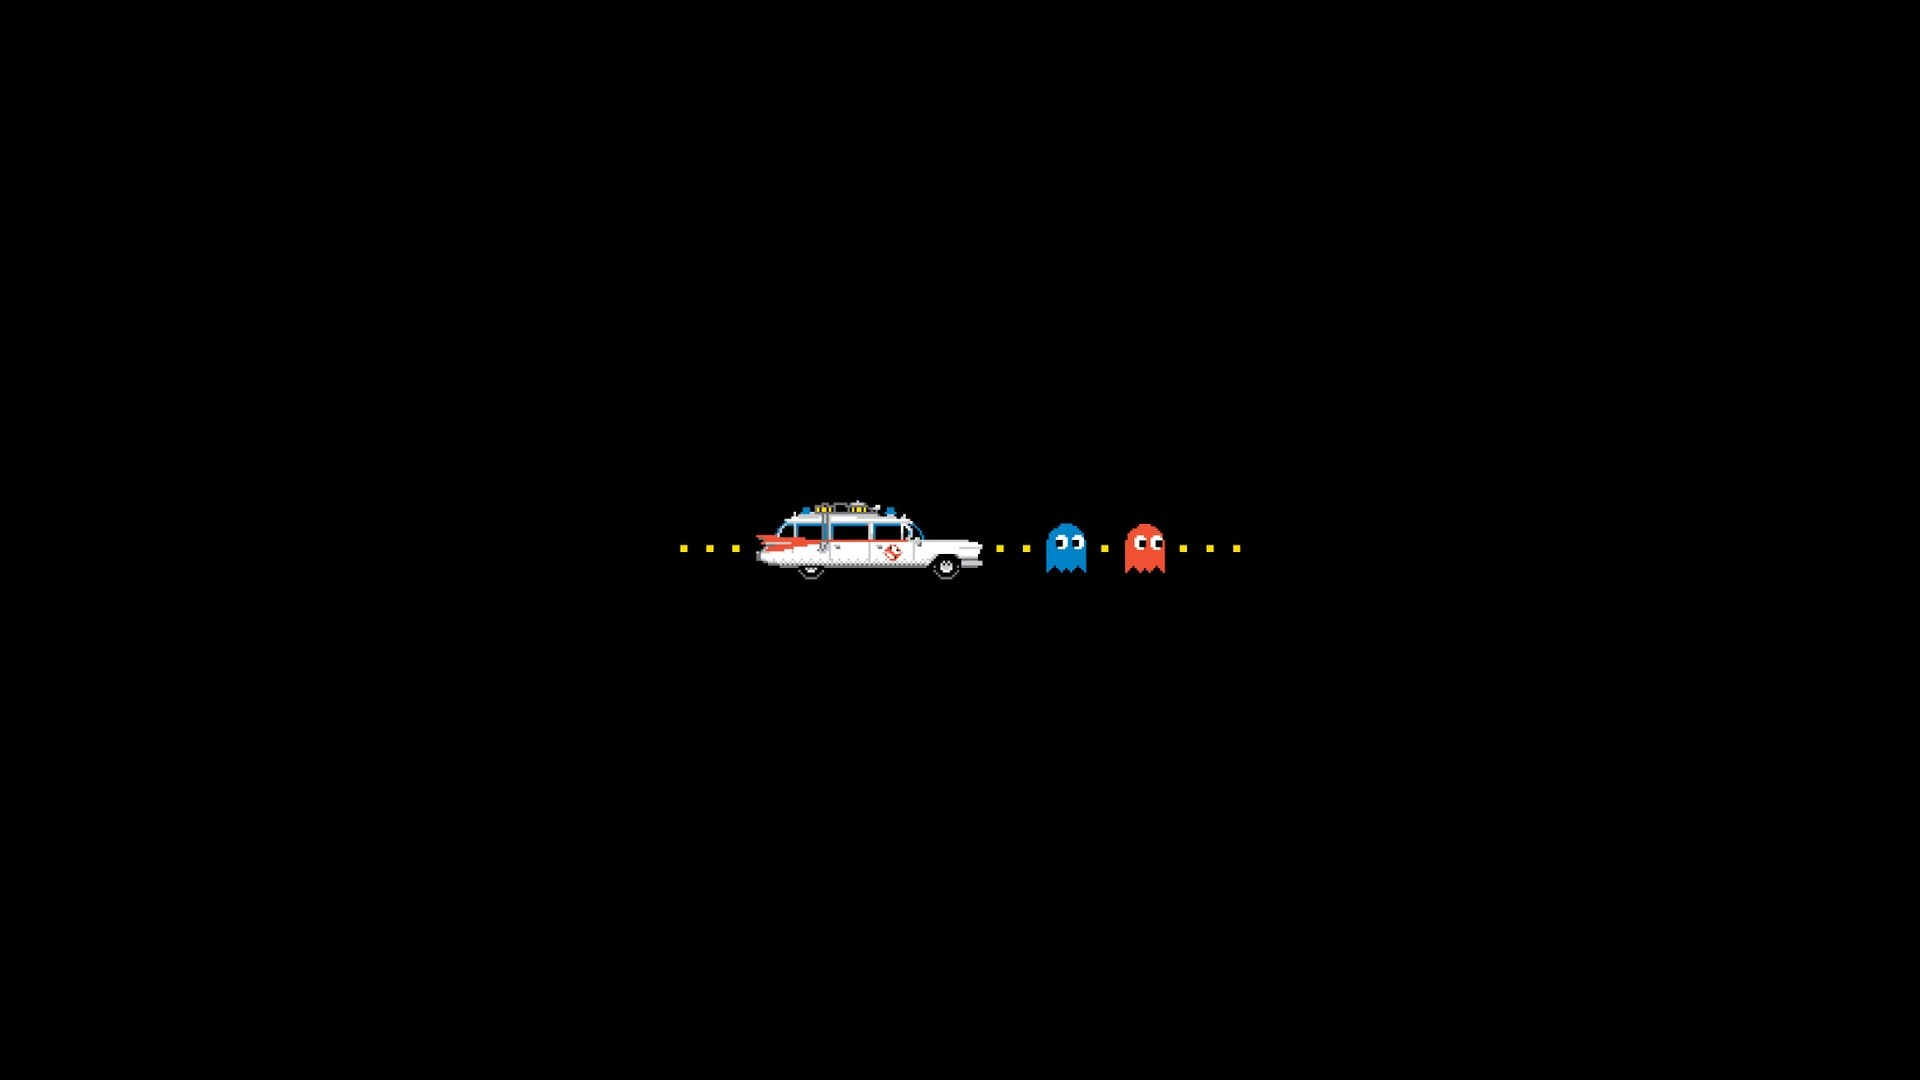 ghostbusters wallpapers WallpaperUP